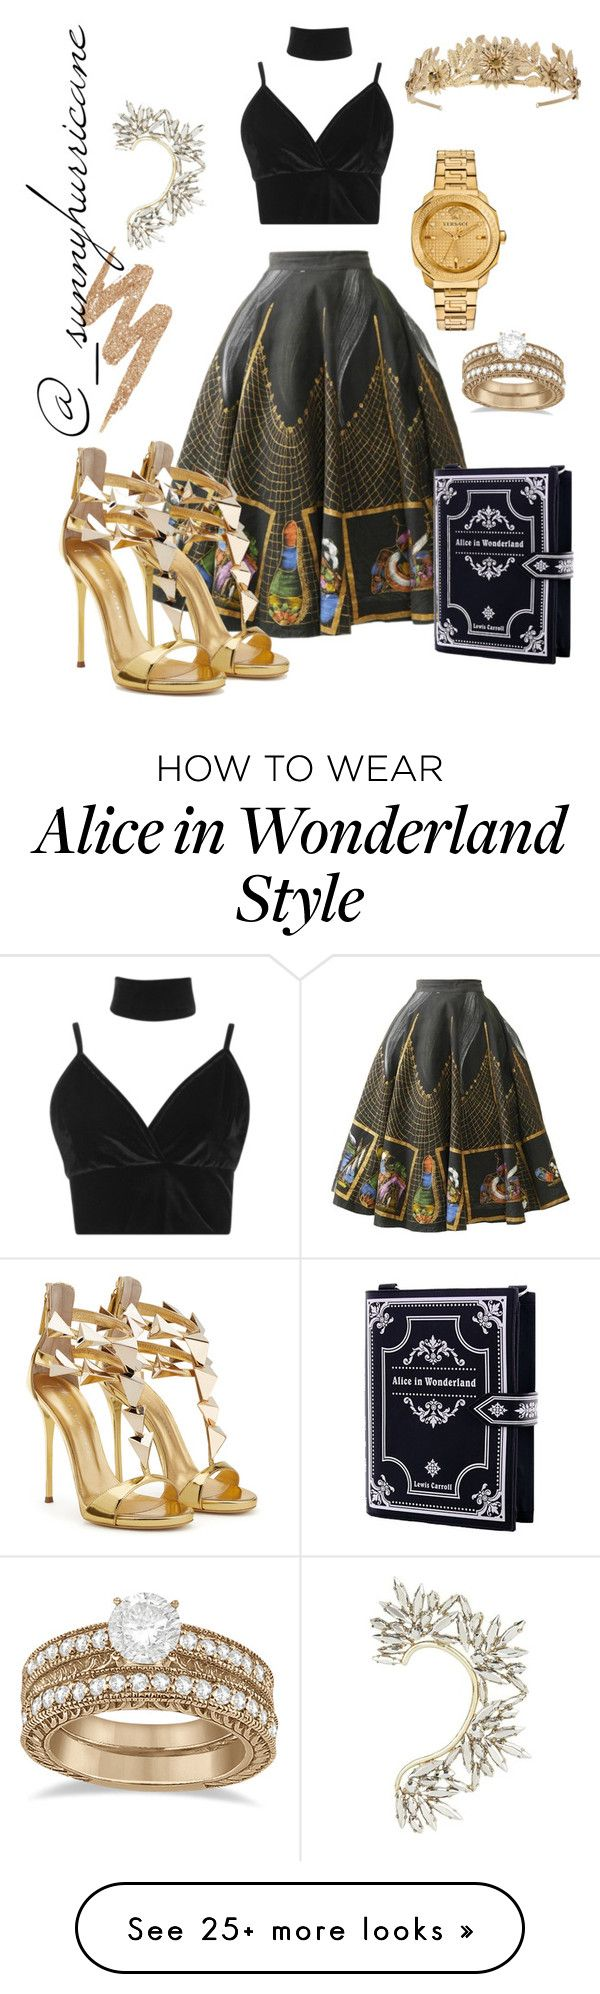 """""""Gold & Thangs"""" by sunnyhurricane on Polyvore featuring Boohoo, Allurez, BCBGMAXAZRIA and Urban Decay"""